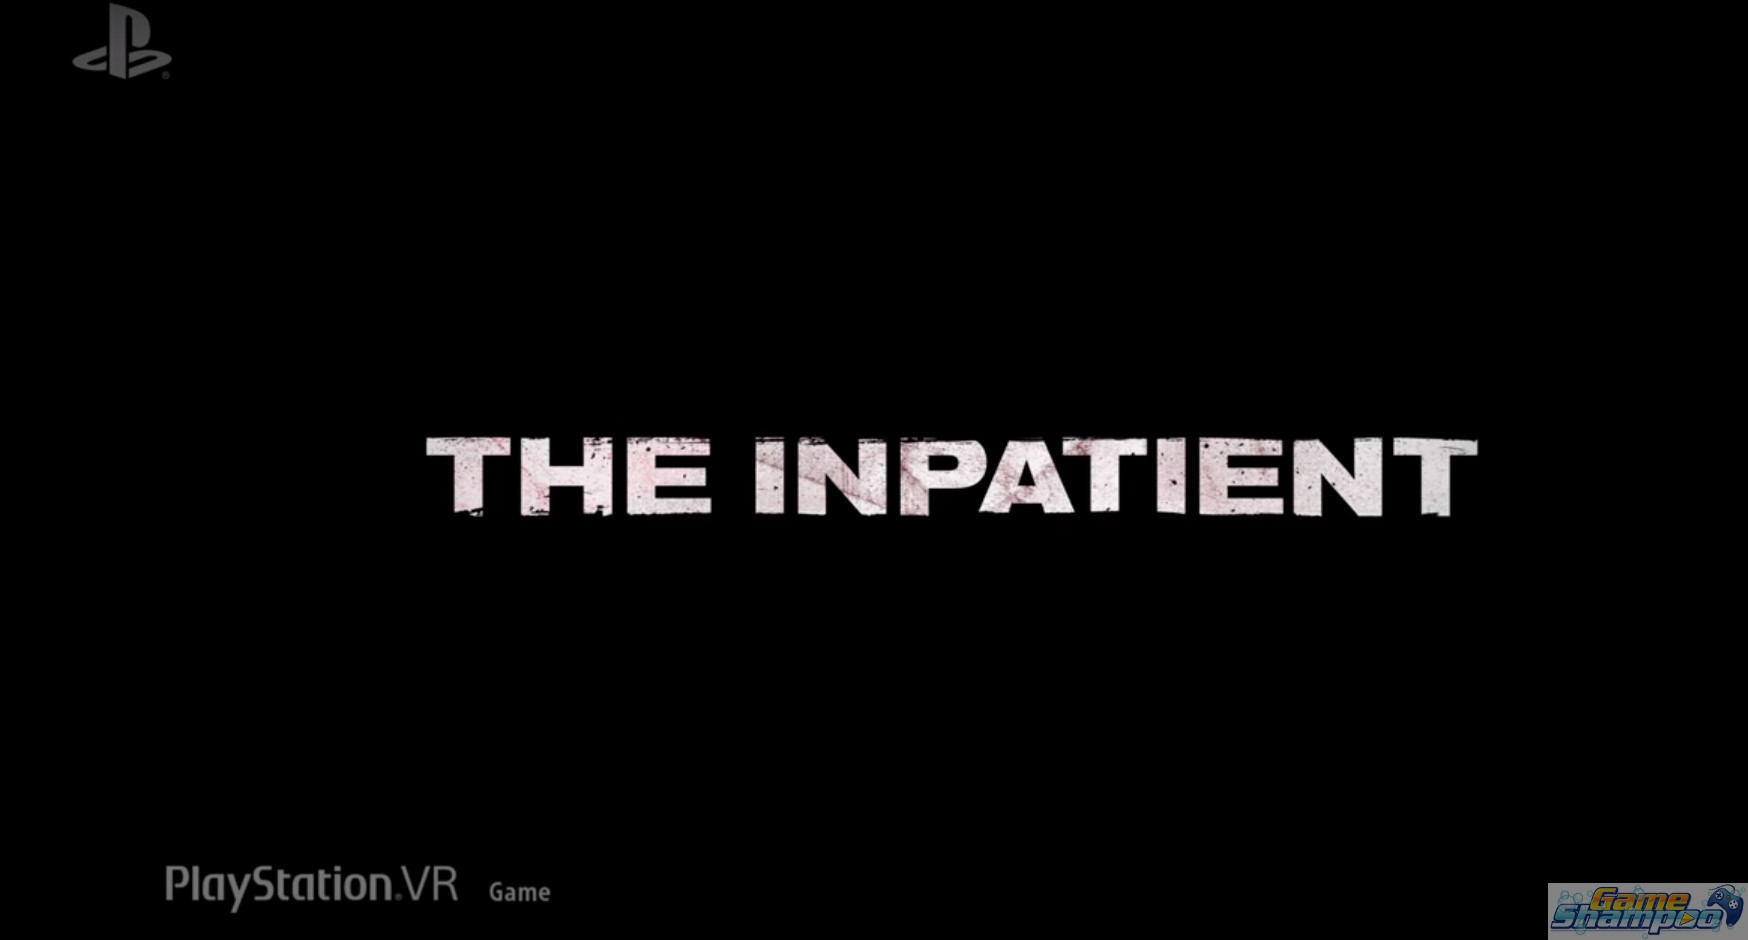 Sony E3 2017 The Inpatient VR